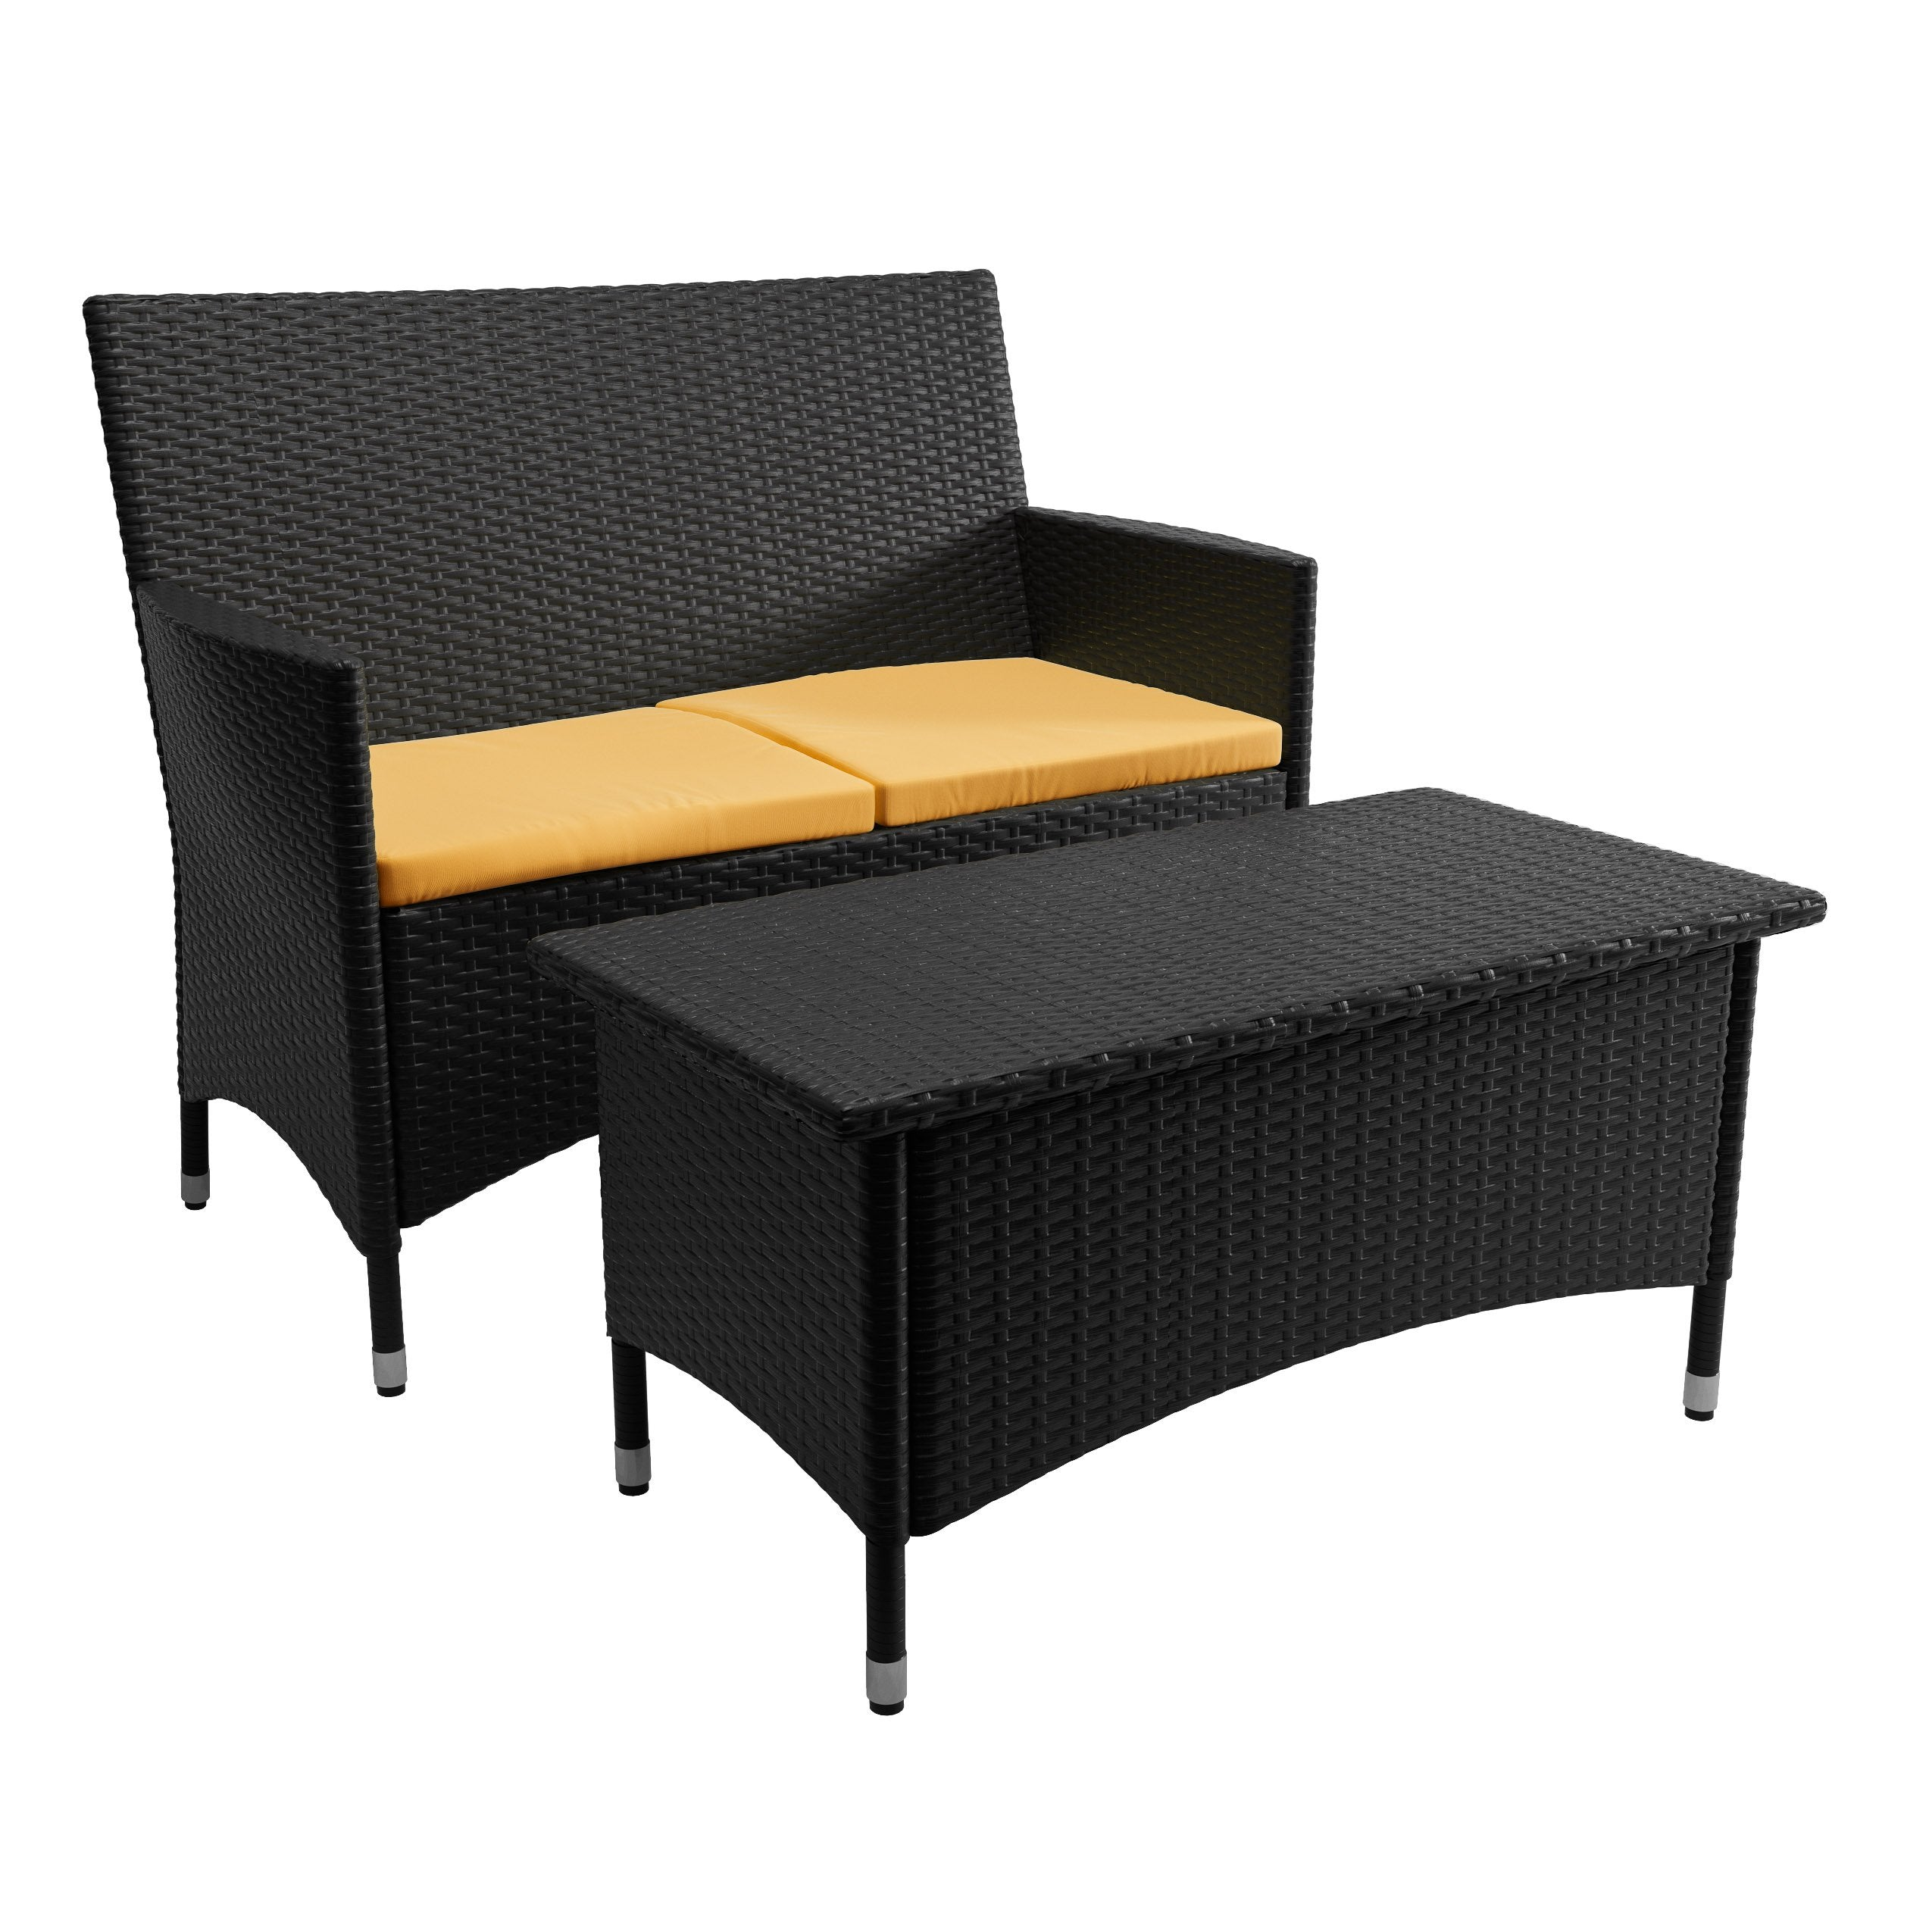 Amazing Patio Sofa And Coffee Table Clearance Pabps2019 Chair Design Images Pabps2019Com